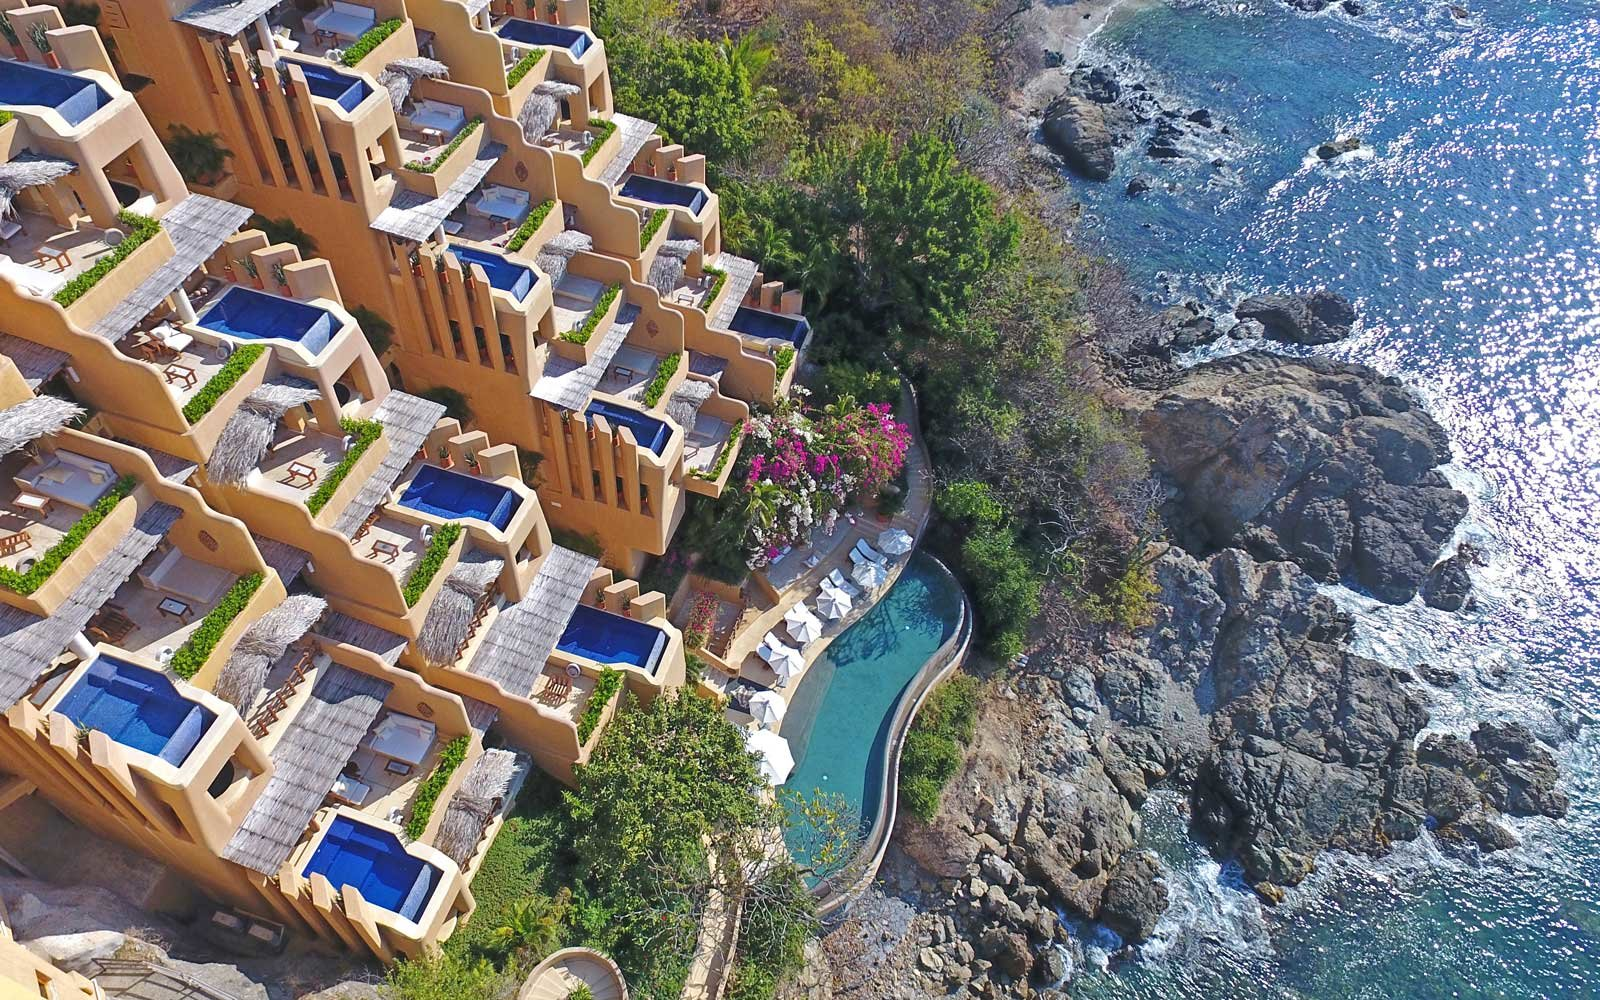 Aerial view of the Cala de Mar Ixtapa resort